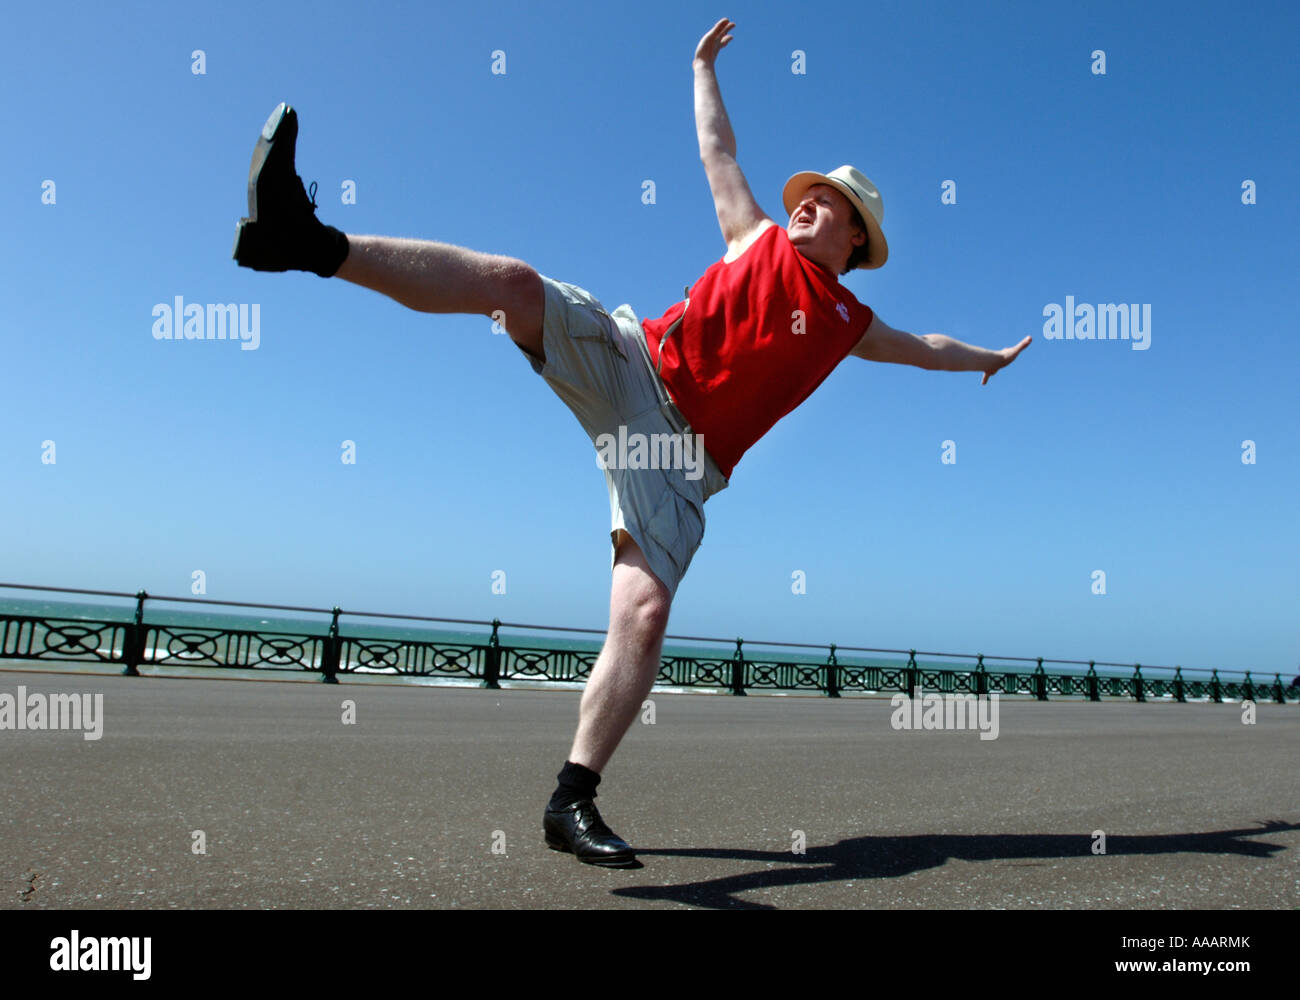 One Overweight Middle Aged Man Doing Clumsy High Kicking Dance Routine On  Brighton Seafront   Stock